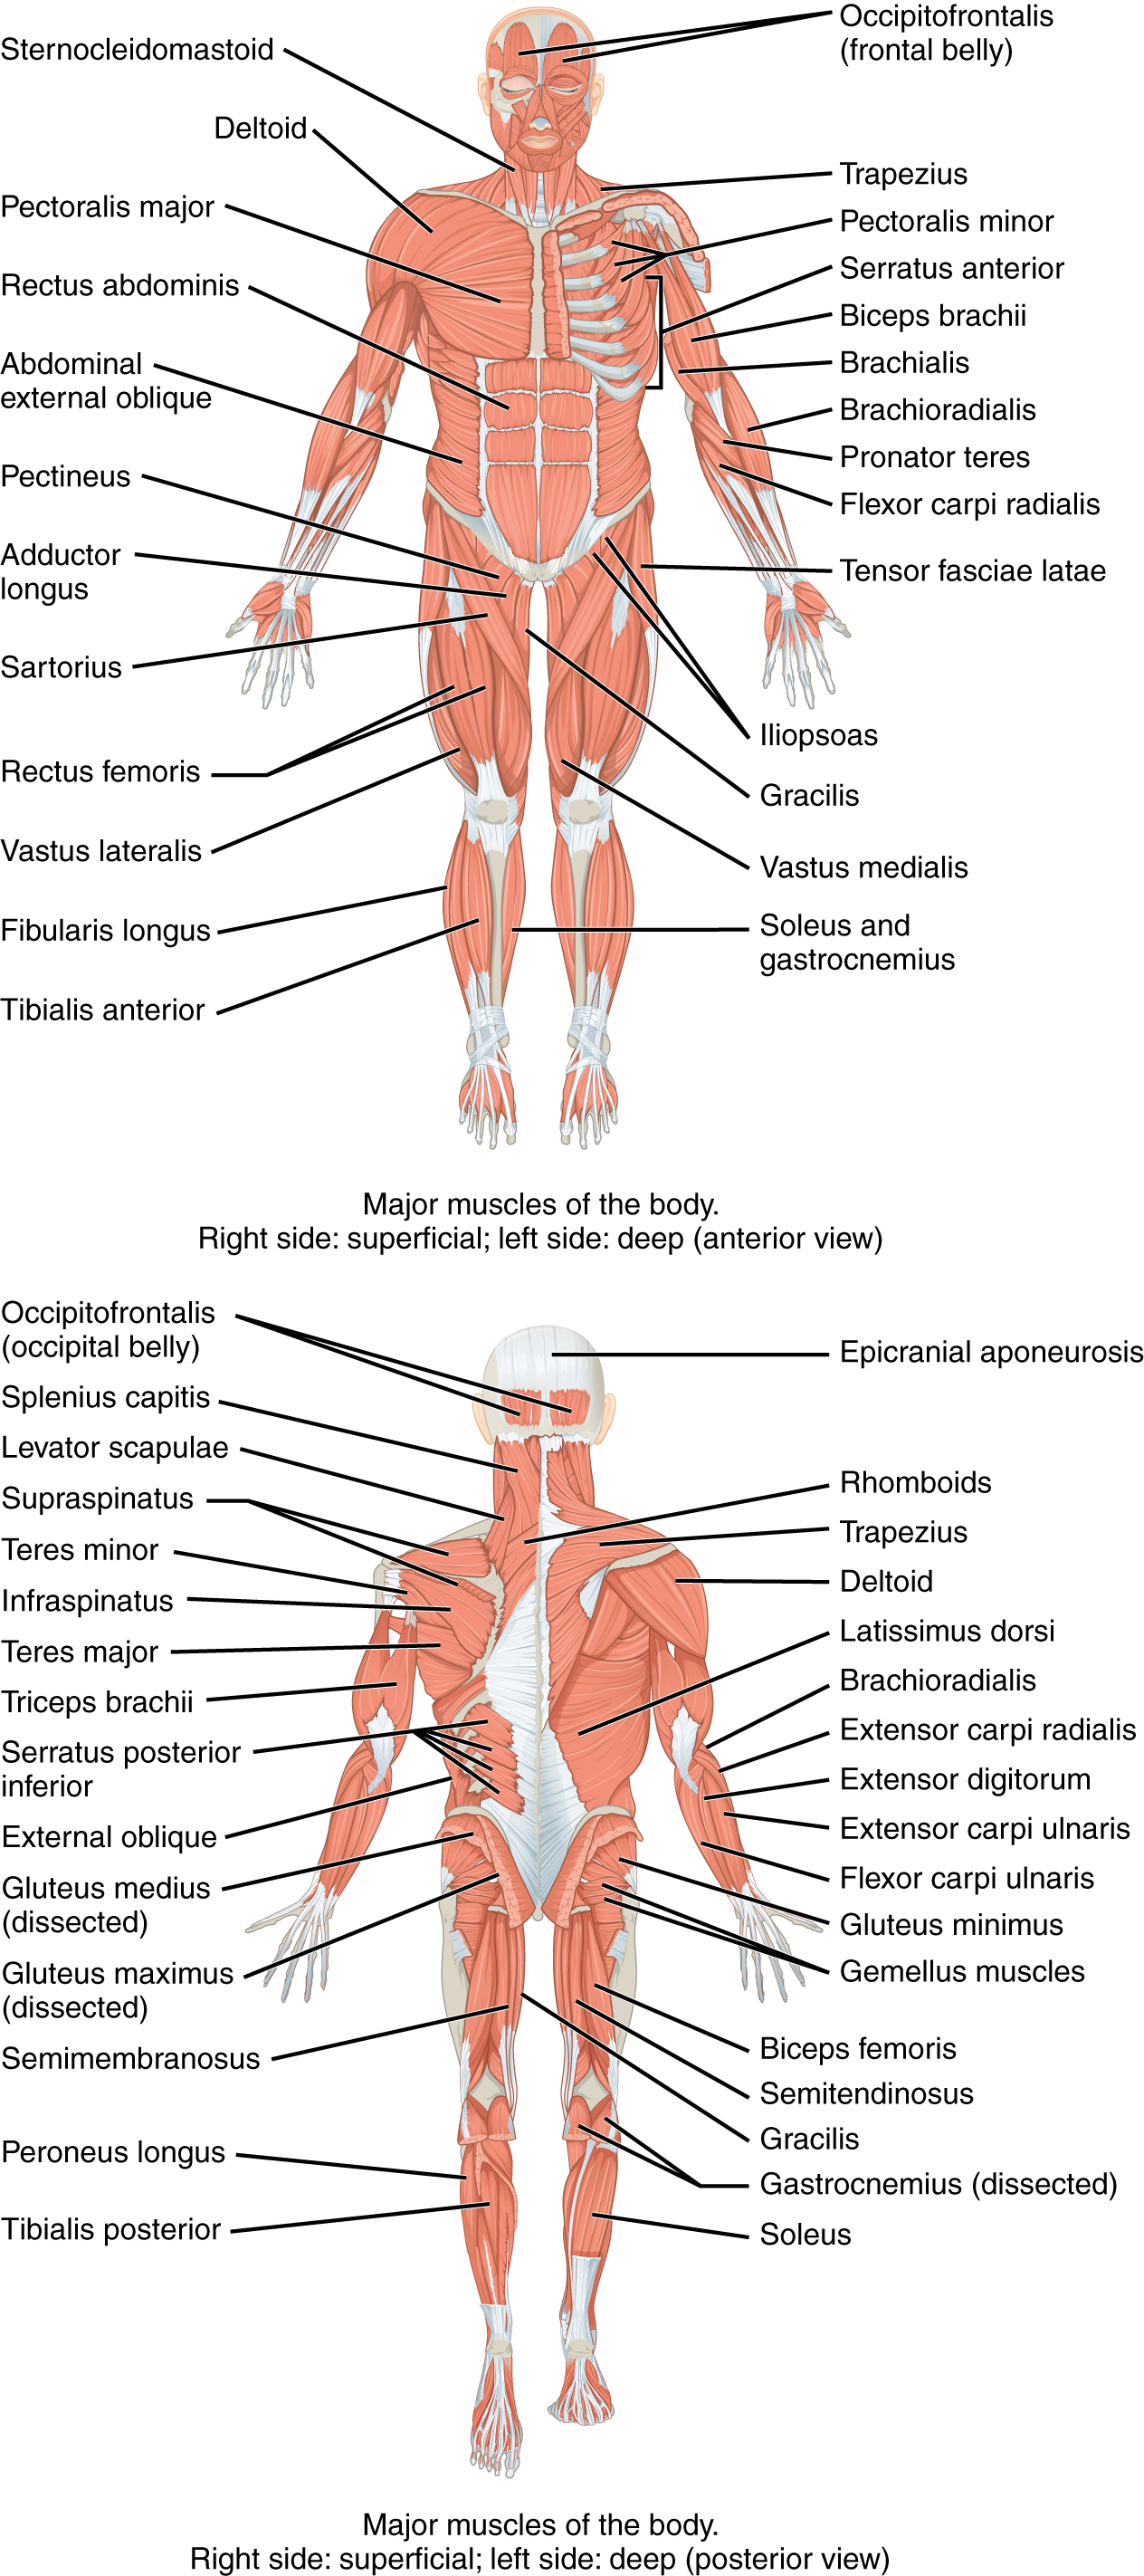 Naming Skeletal Muscles - Anatomy and Physiology - OpenStax